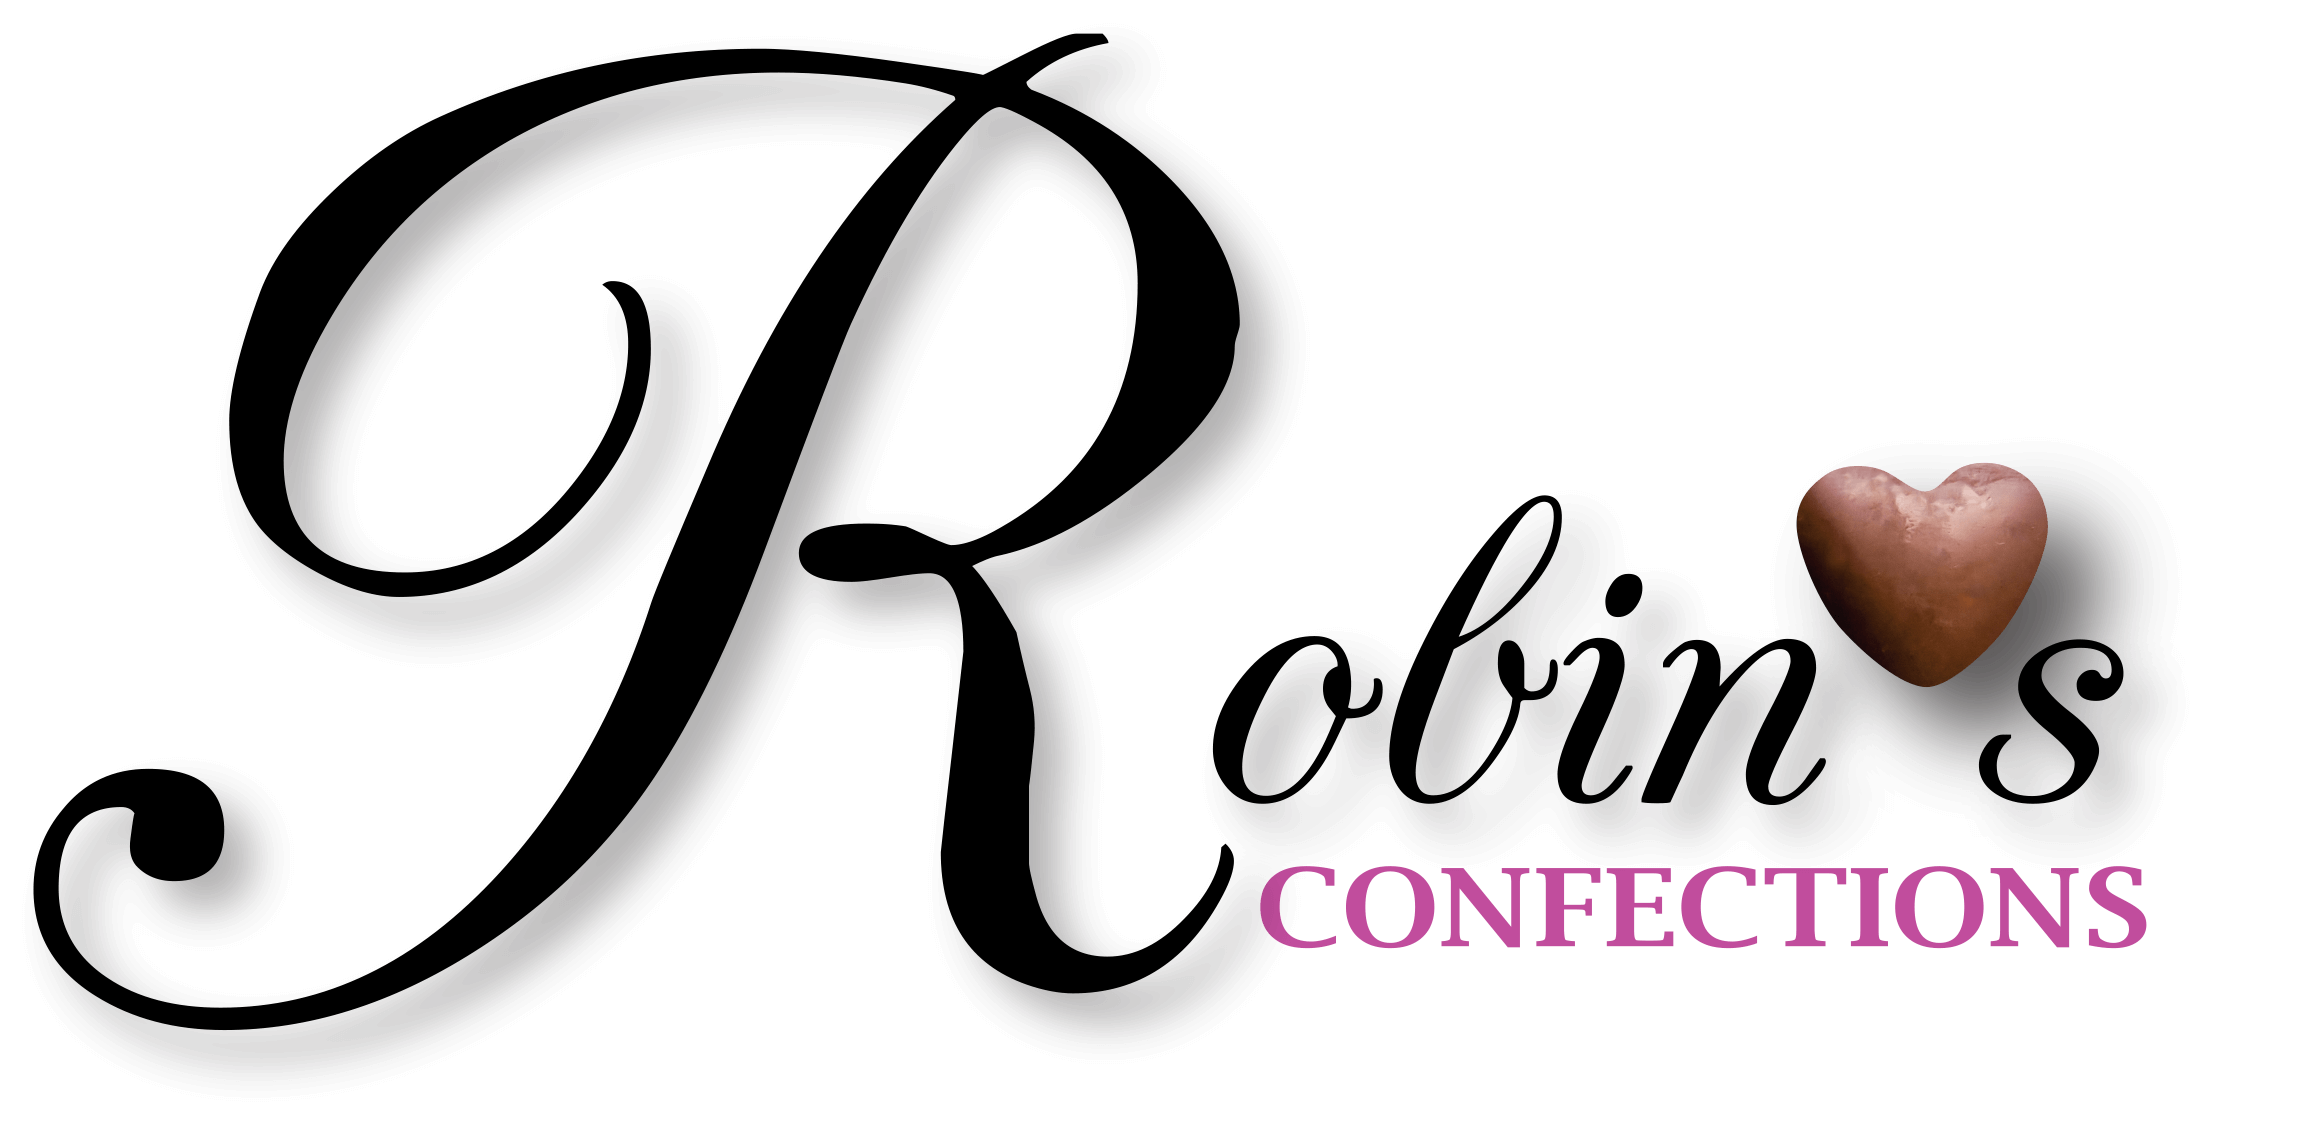 robinsconfections